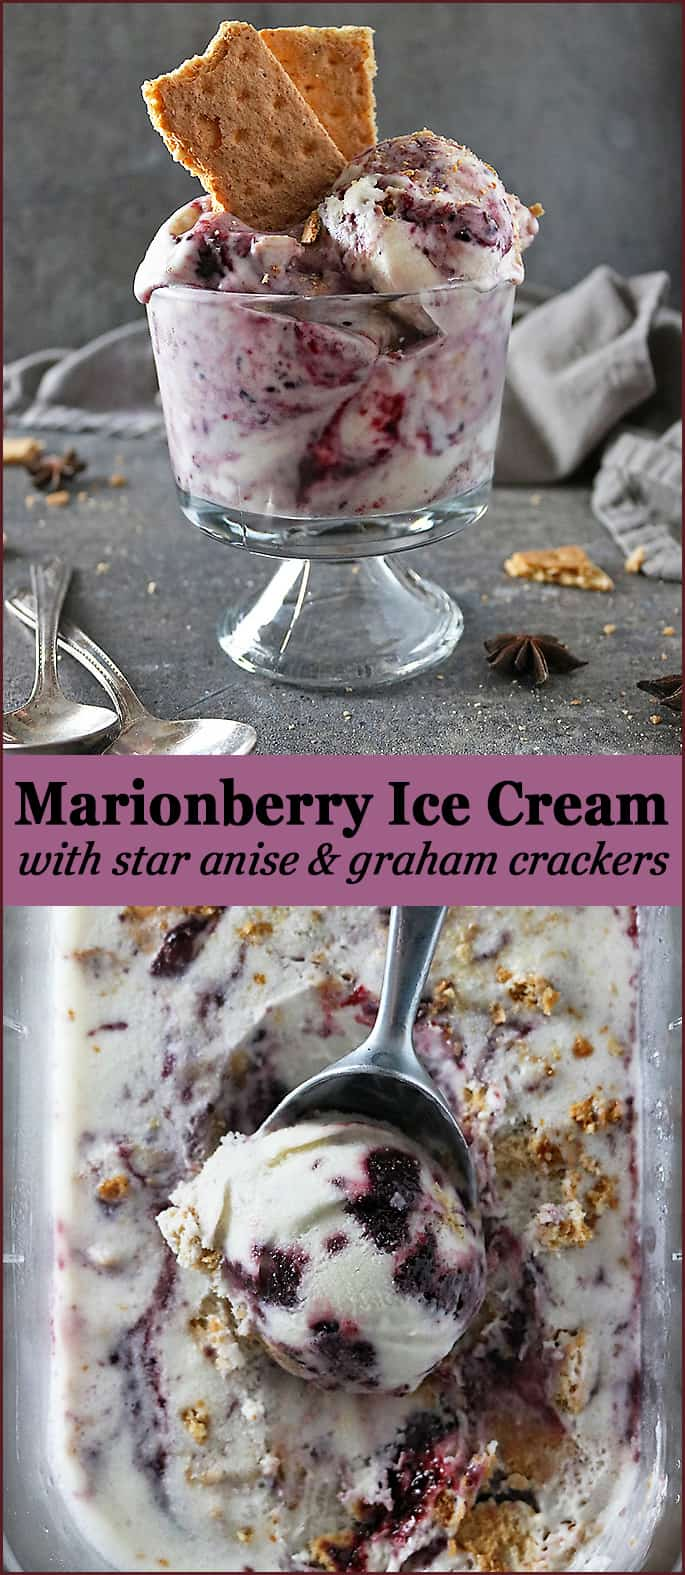 Marionberry Ice Cream with Star Anise & Graham Crackers Inspired by Salt and Straw in Portland, Oregon.